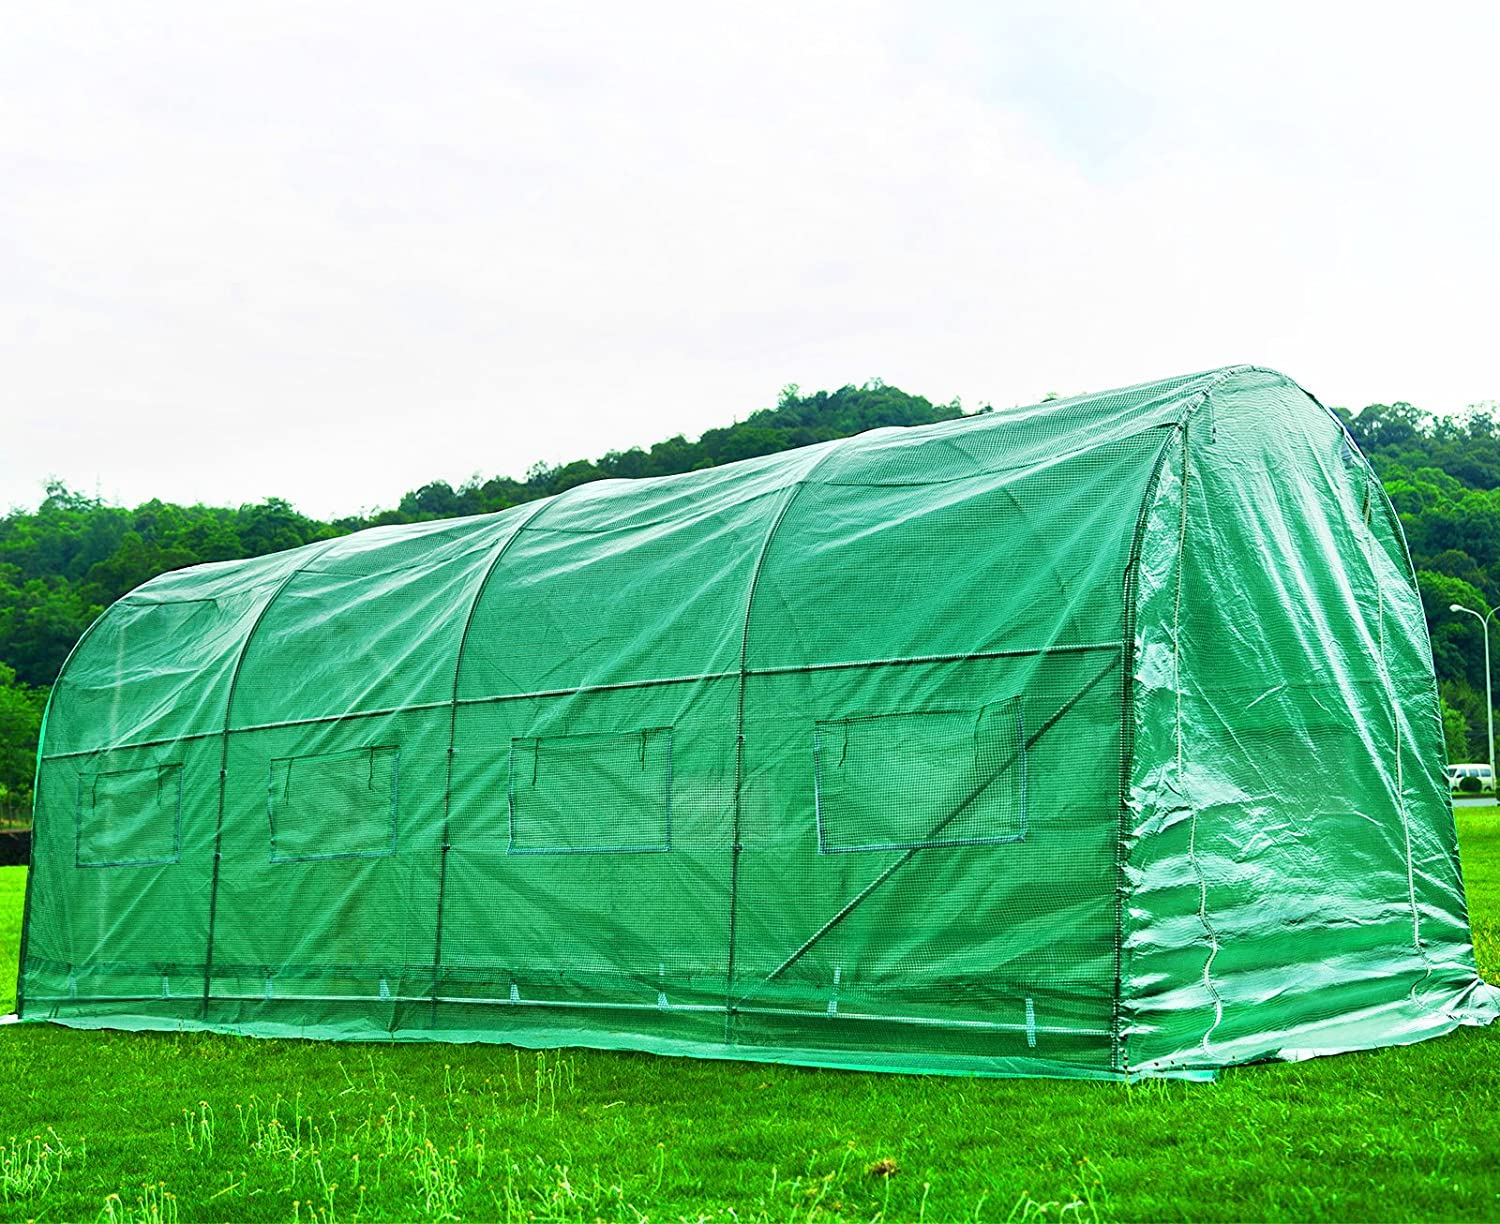 Superworth 3M X 2M Fully Galvanised Steel Greenhouse Frame Poly Tunnel Polytunnel Tunnel 6 m/² Area 2M Height 4 Windows 2 Doors 2 Sections